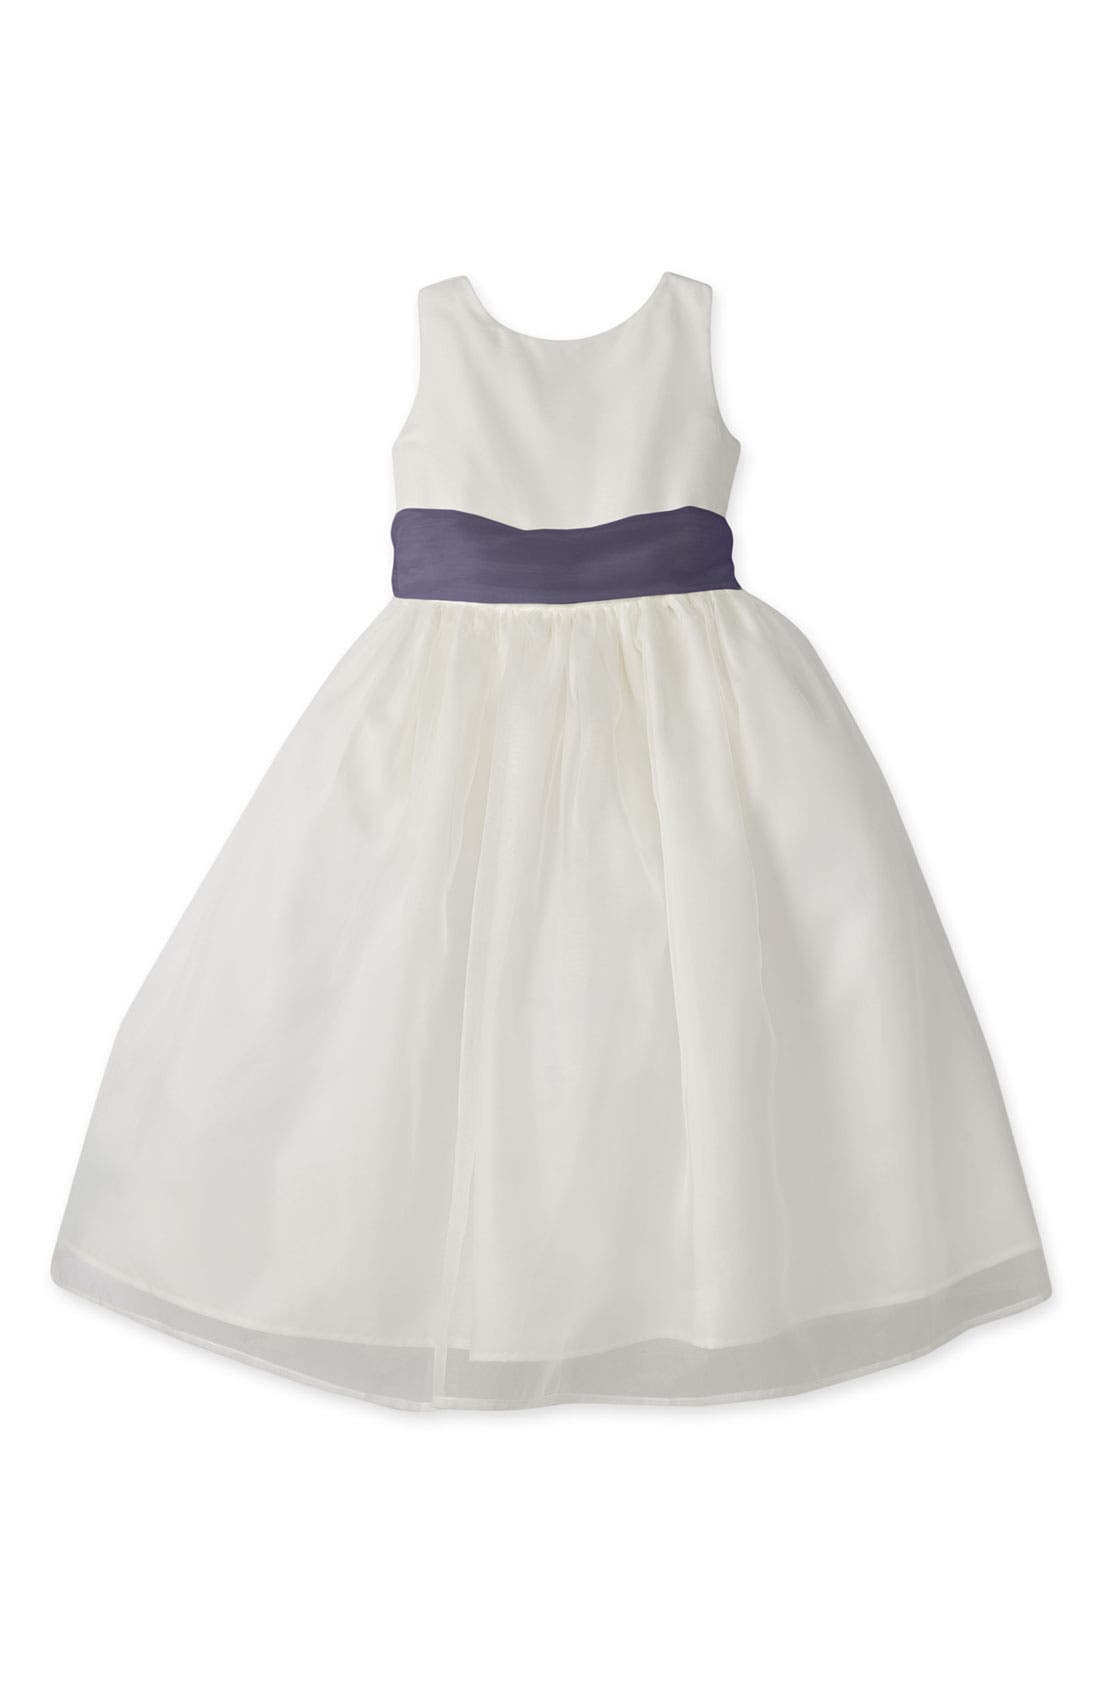 4ed451cece6 Baby Girls  Clothing  Dresses